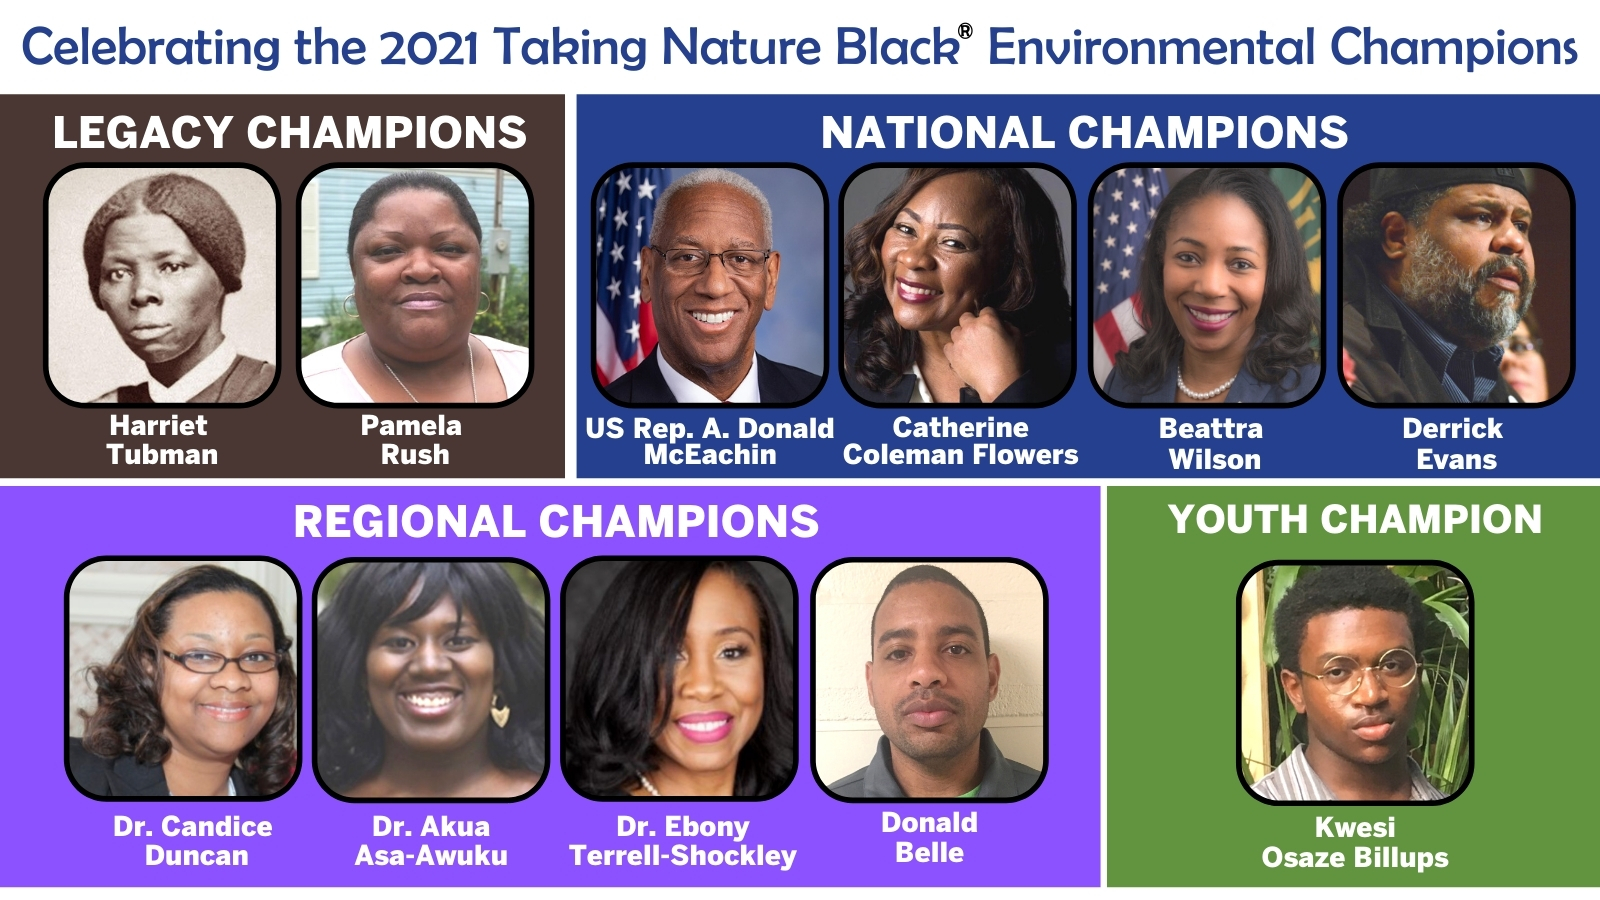 2021 Taking Nature Black Environmental Champions